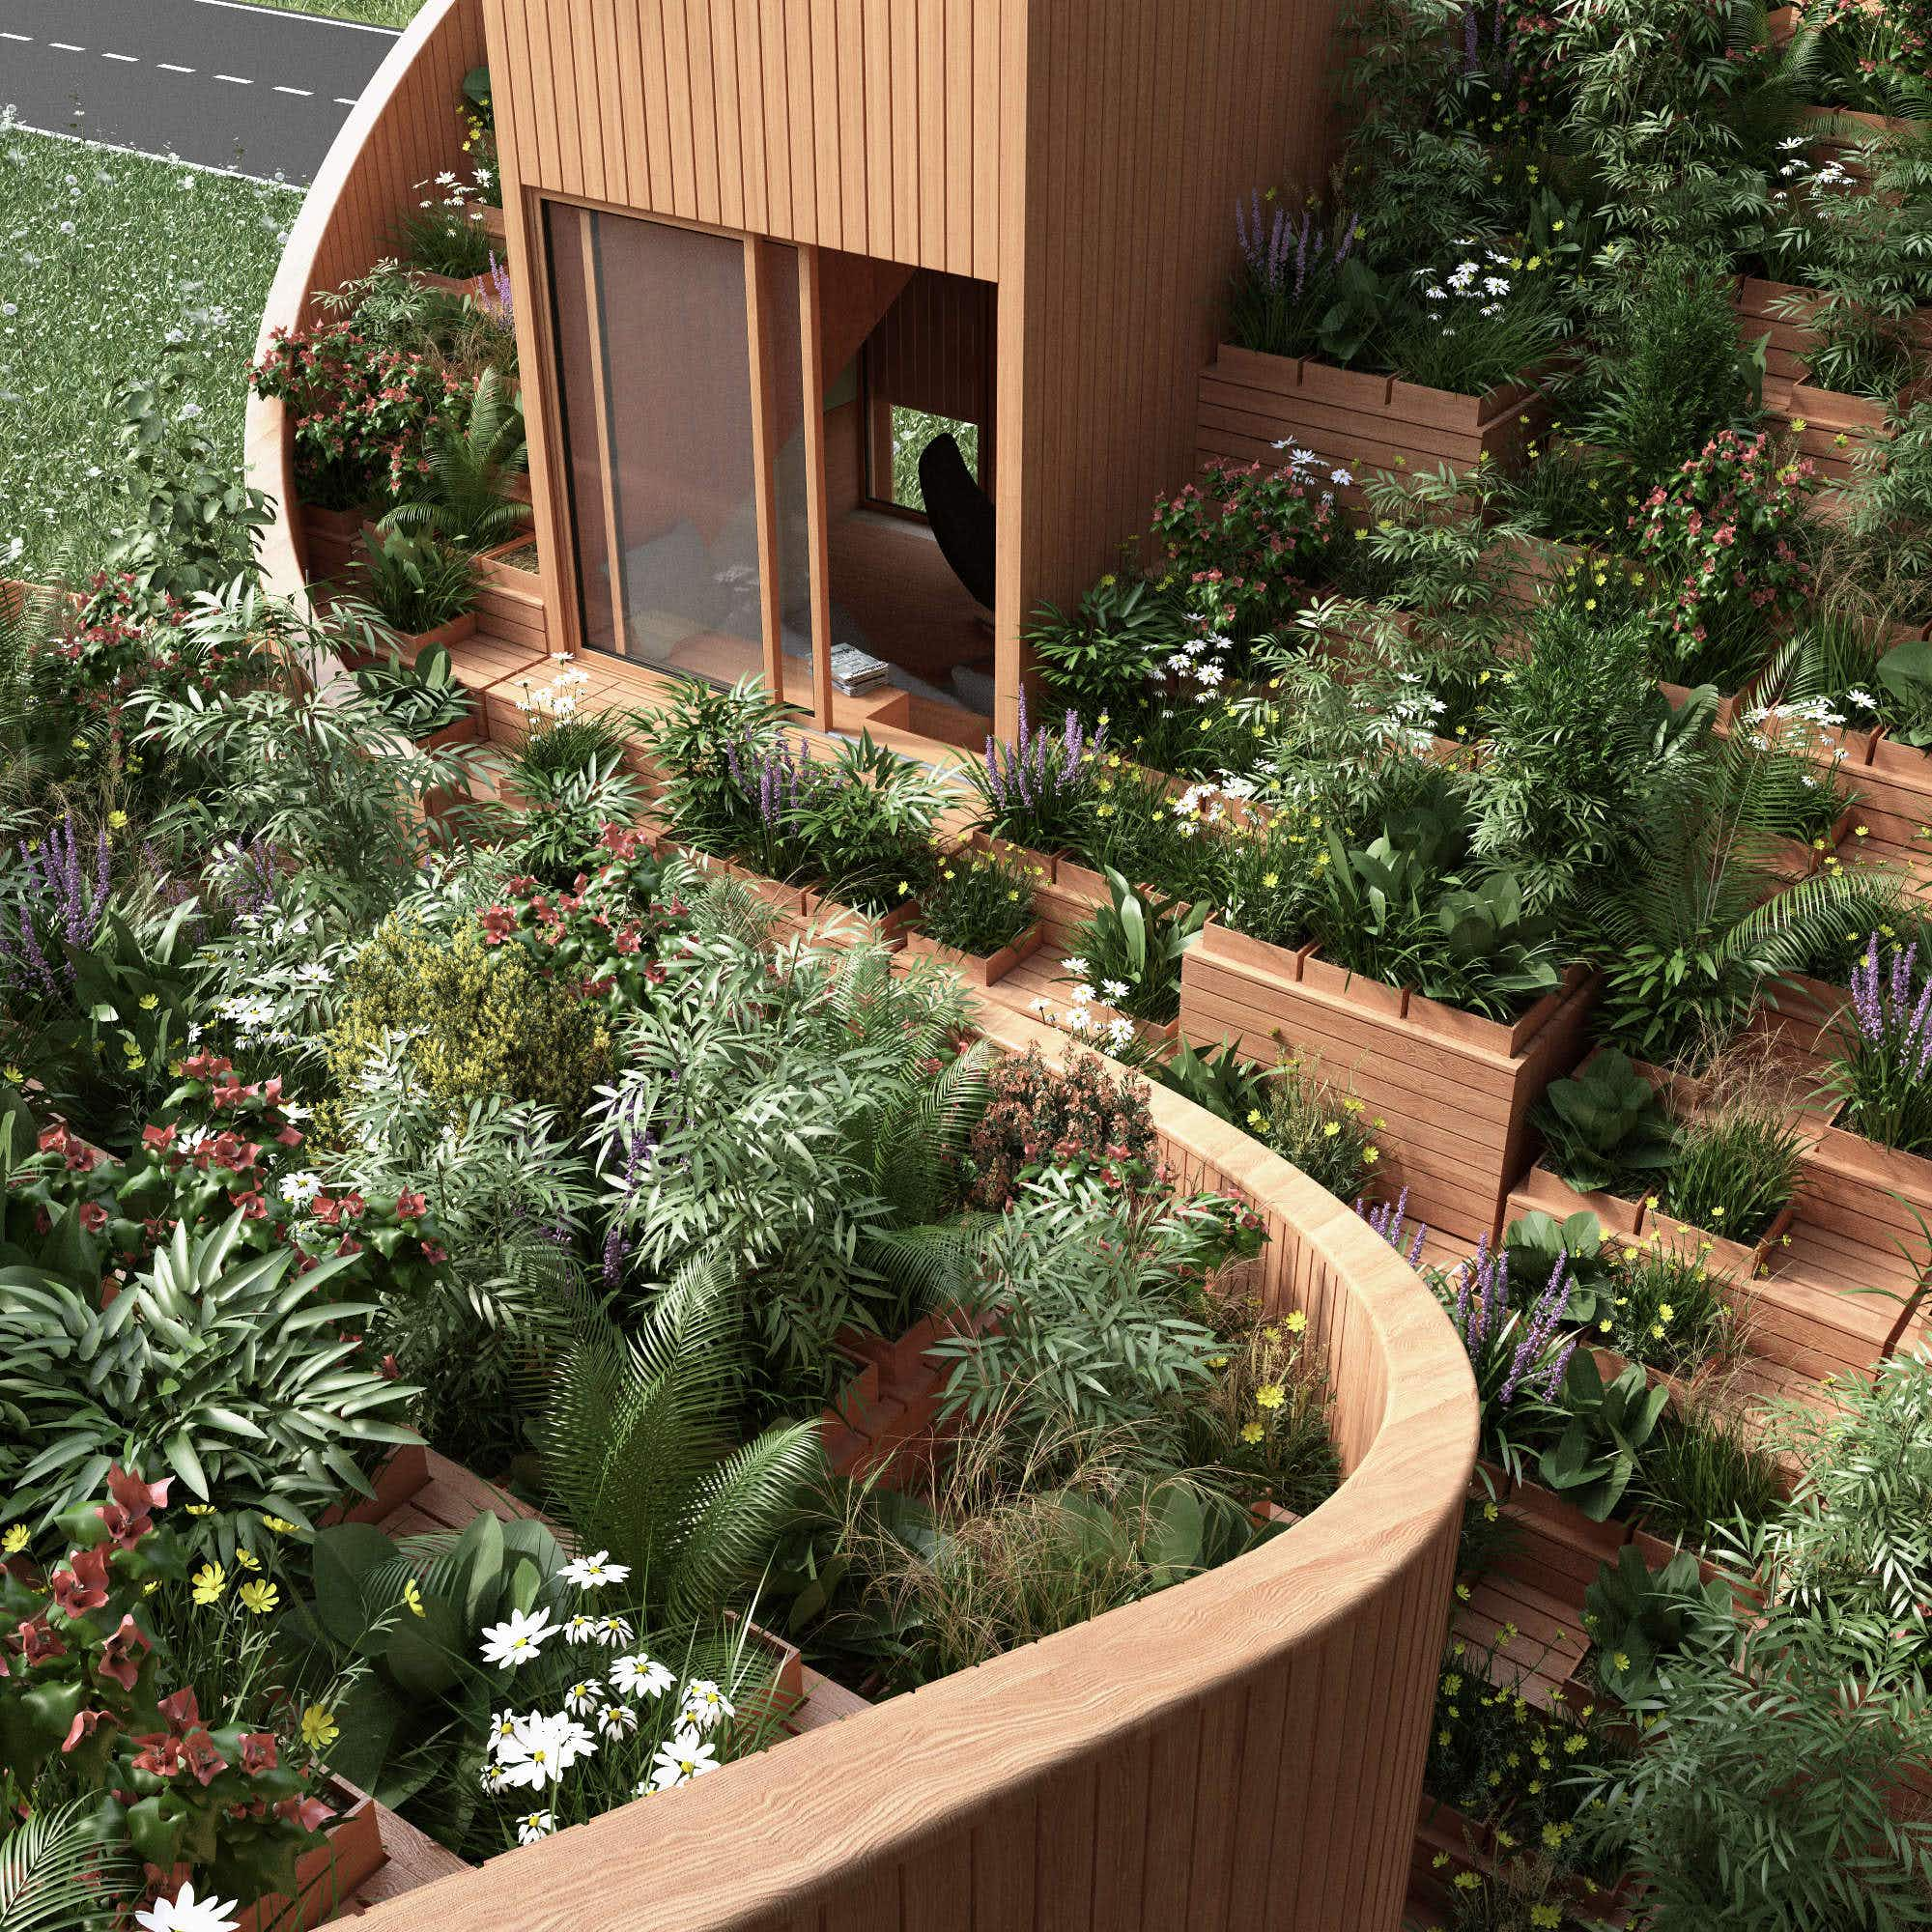 This self-sufficient home concept features a full garden on the roof